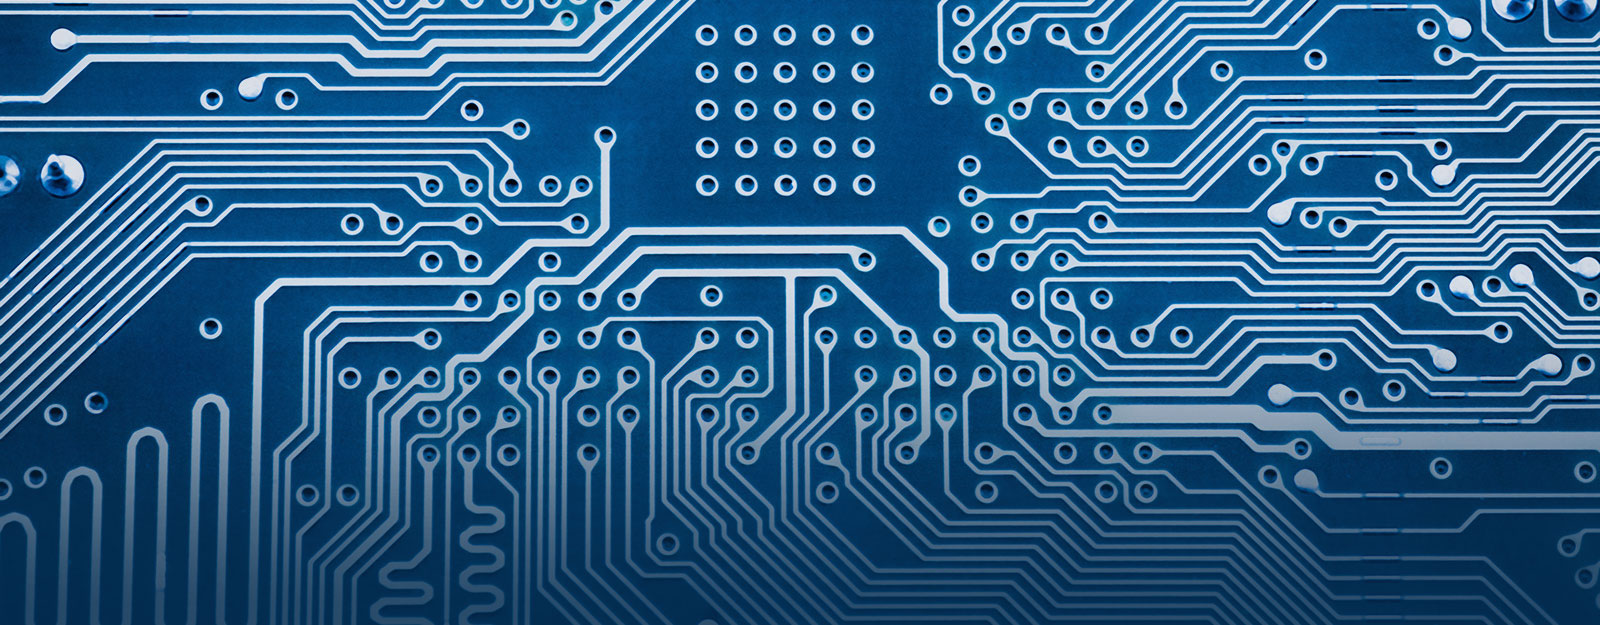 Stryker Corp In sourcing PCBs Case Solution